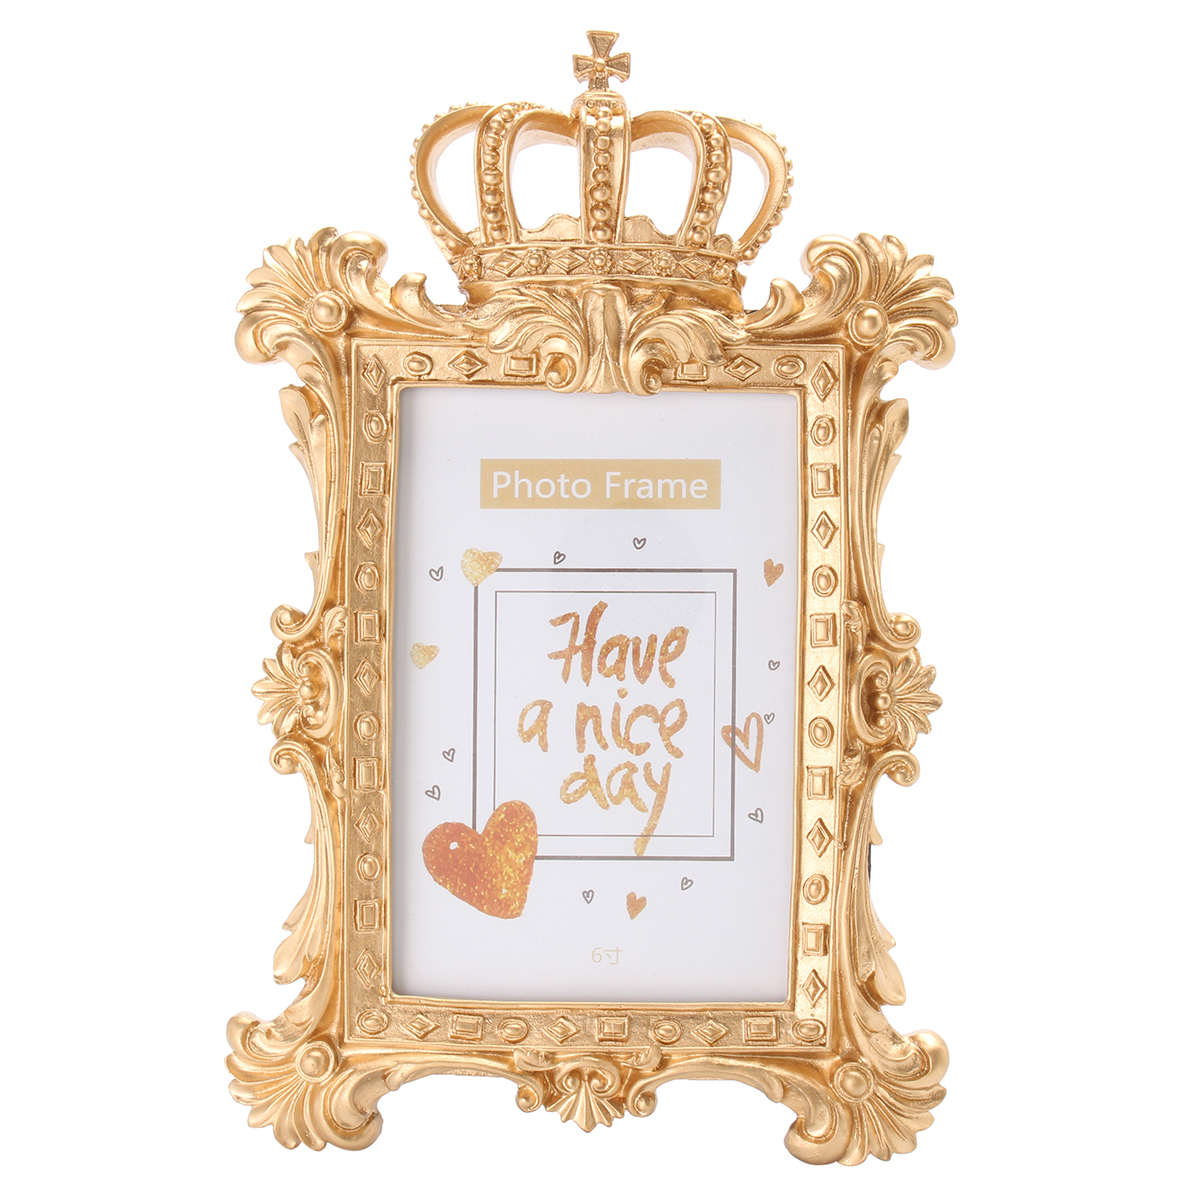 Gold crown home decor picture photo frame baroque luxury for Baroque home accessories